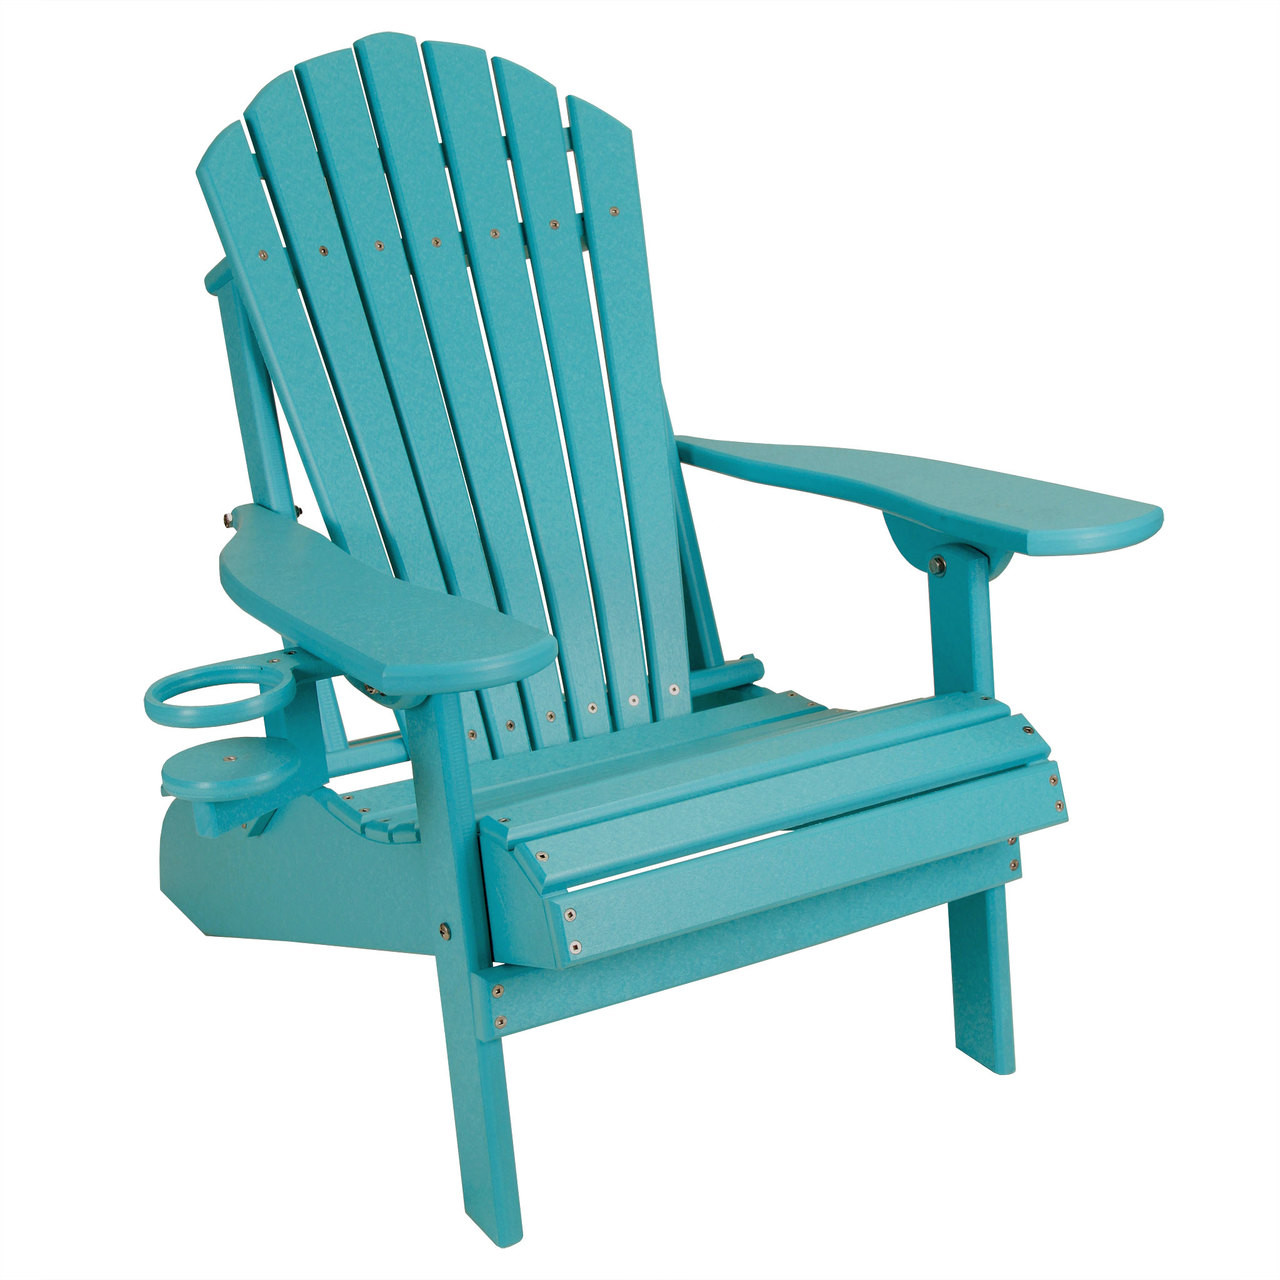 Outer banks child size folding adirondack chair with cup holder aruba blue